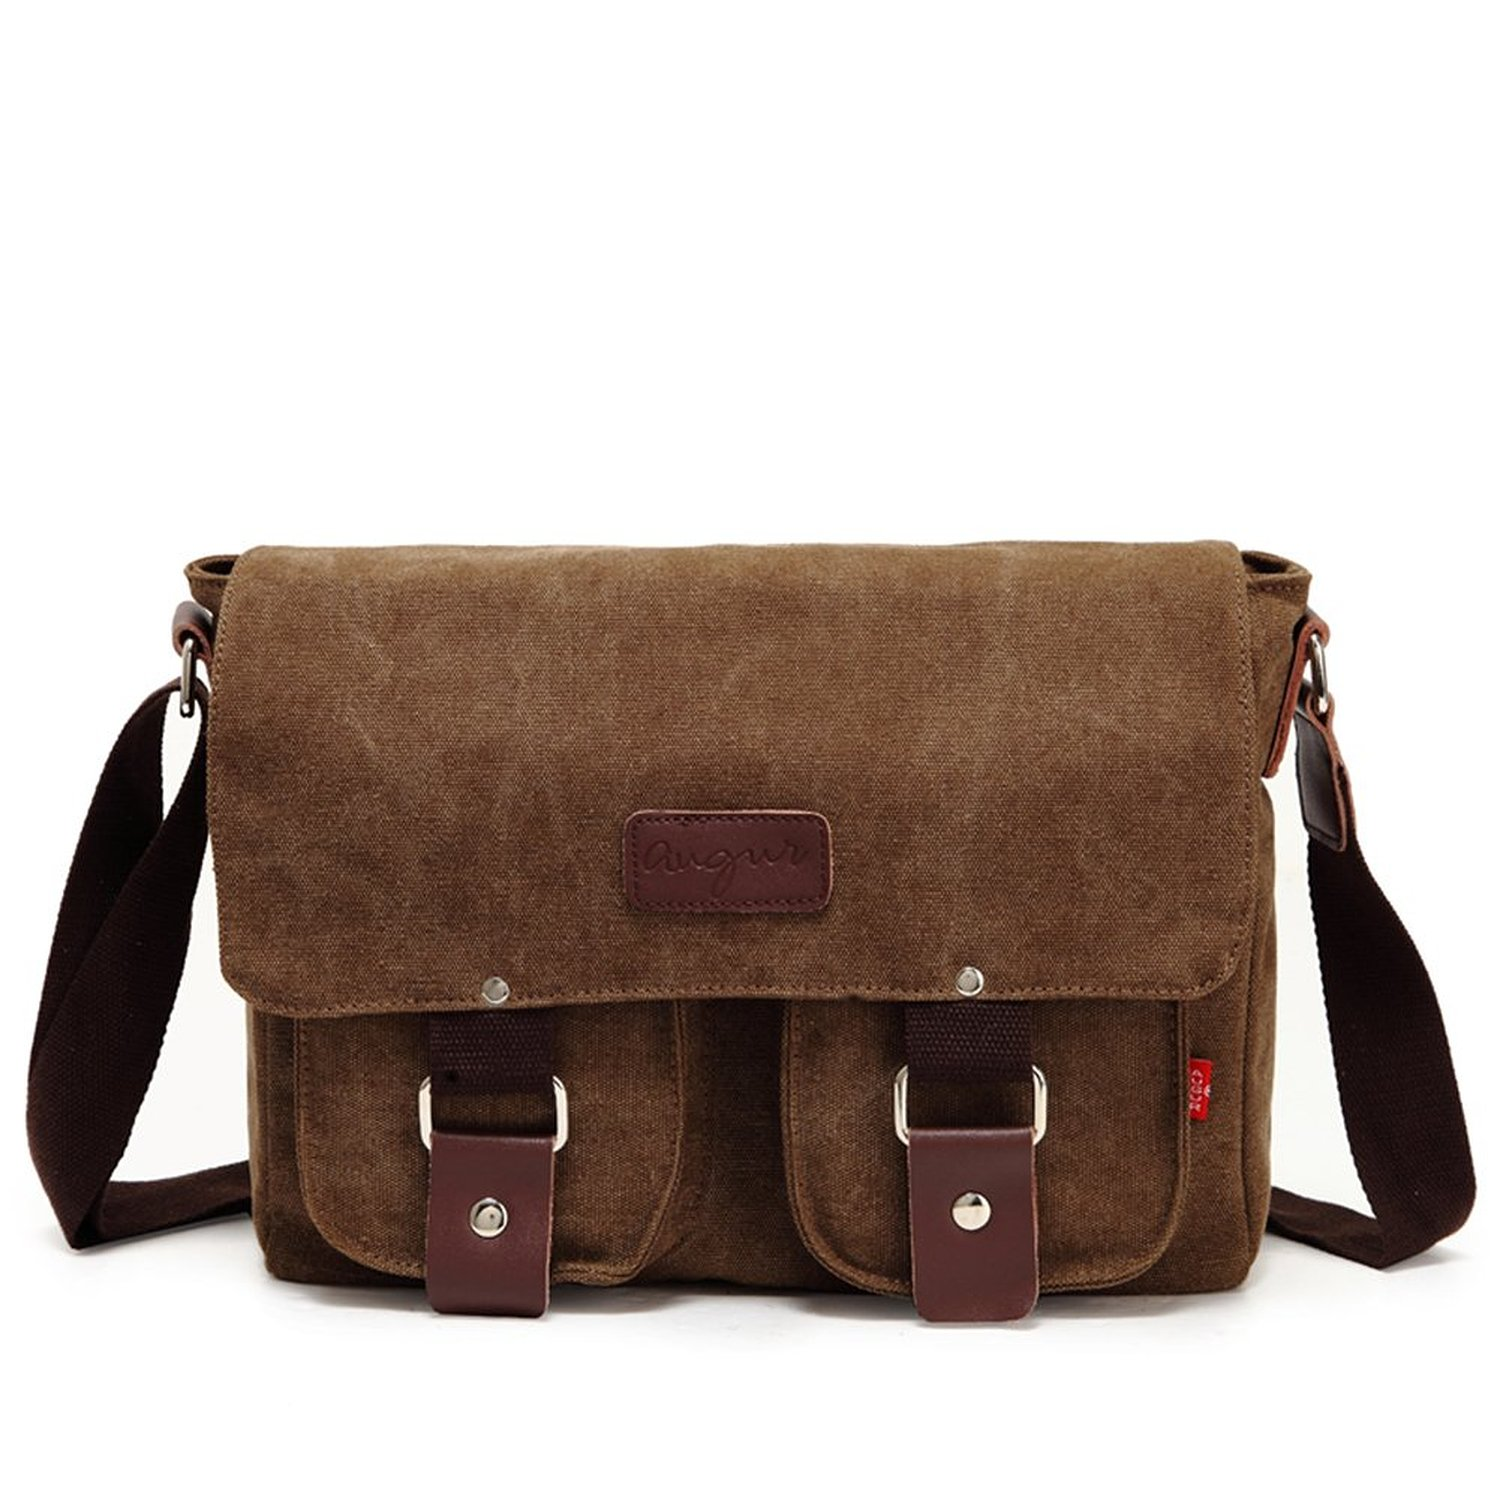 Sechunk Men's Shoulder Bag Canvas Retro Messenger bags for Leisure Travel Brown